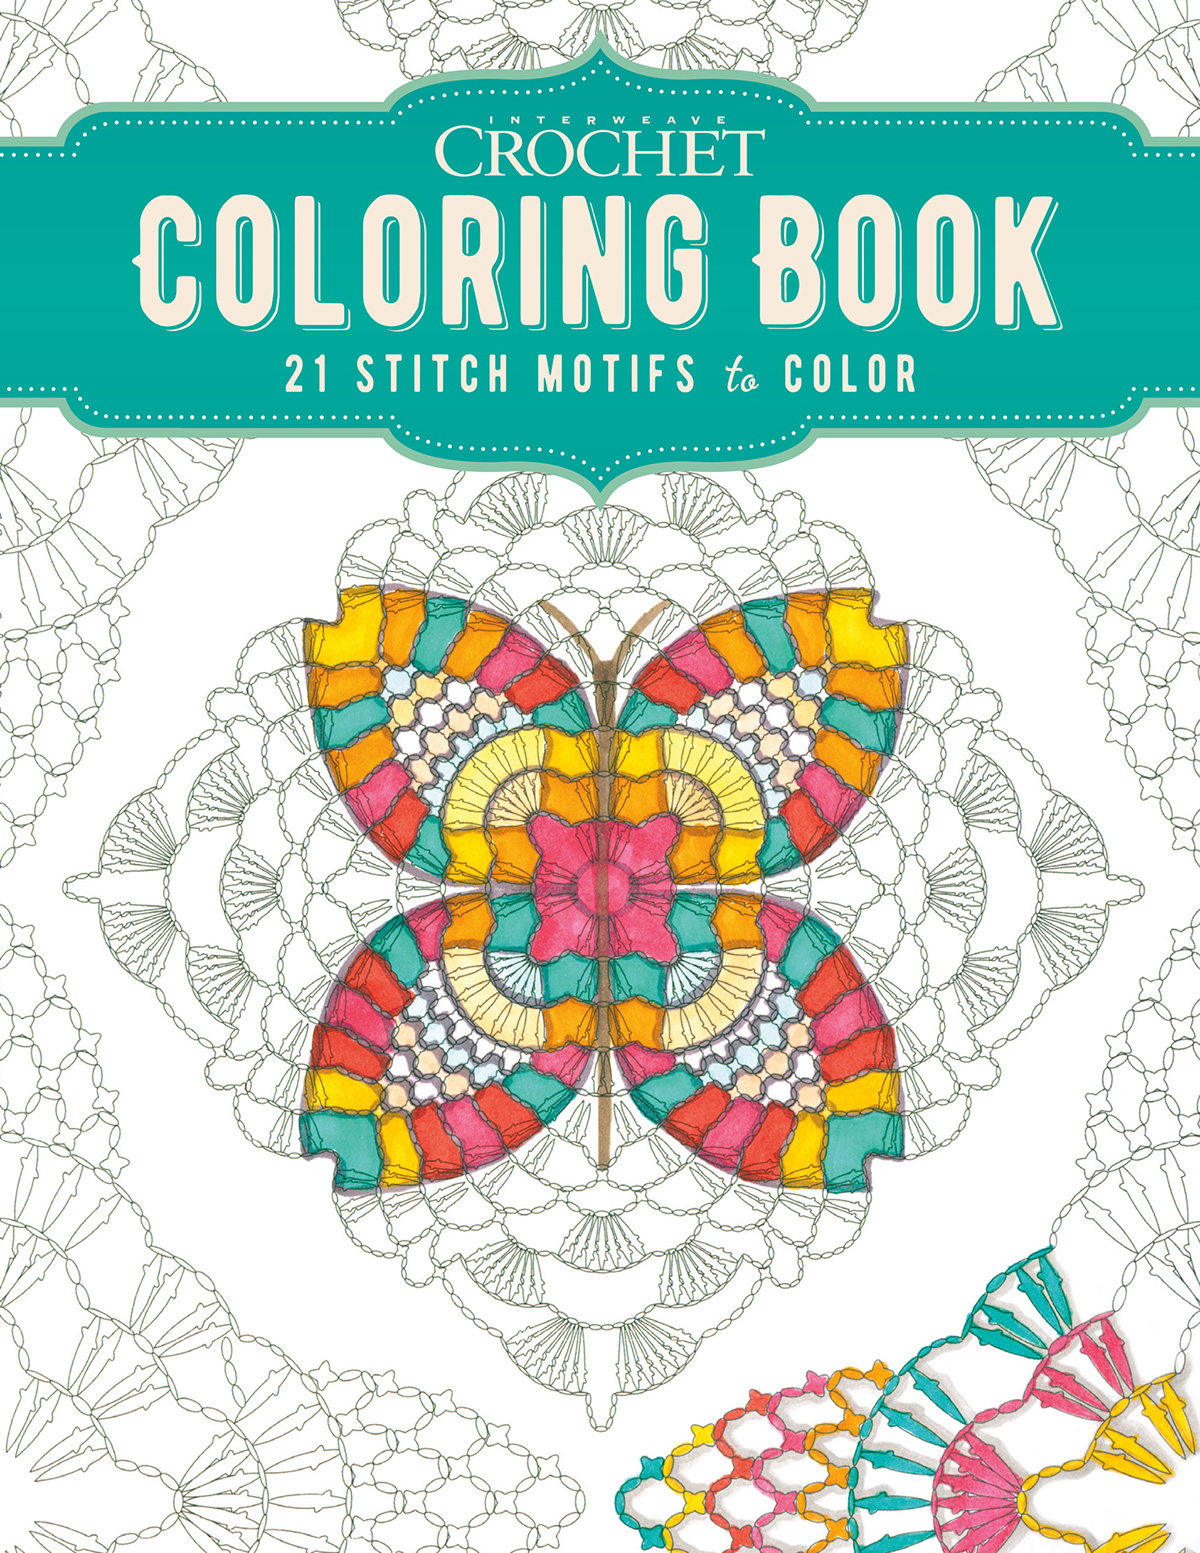 digital coloring book and print ads on behance - Digital Coloring Book